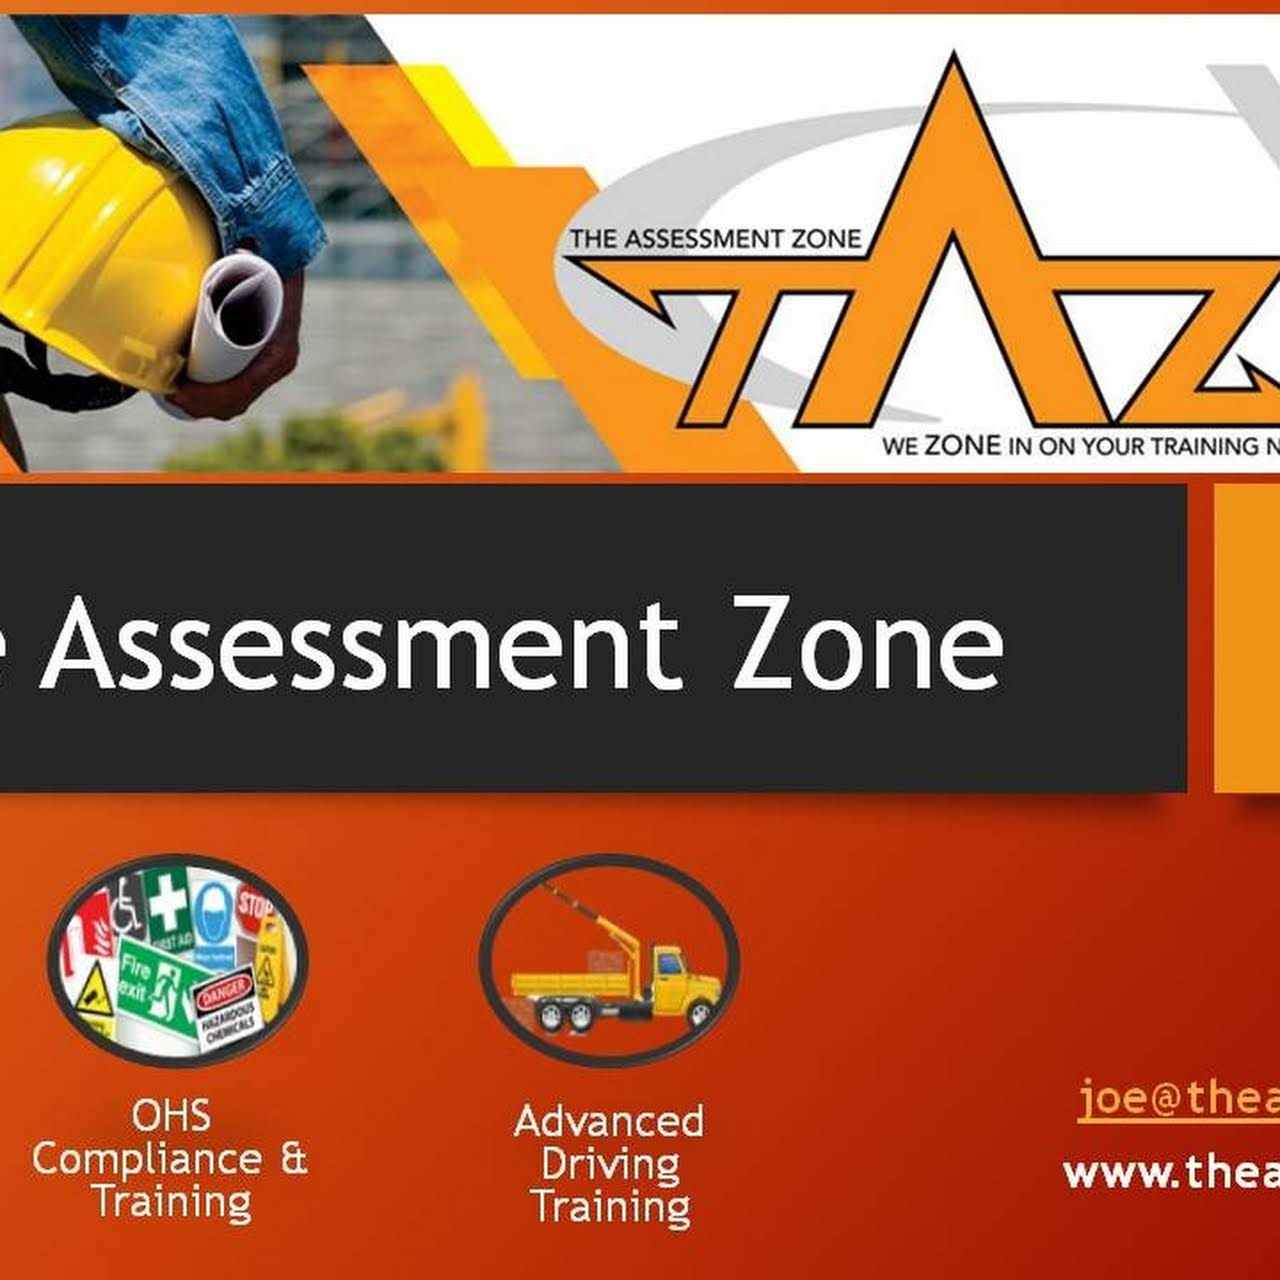 The Assessment Zone The assessment zone is an accredited training provider , consultants and equipment provider in the fields of ohs , lifting equipment and soft skills www.theassessmentzone.co.za. the assessment zone